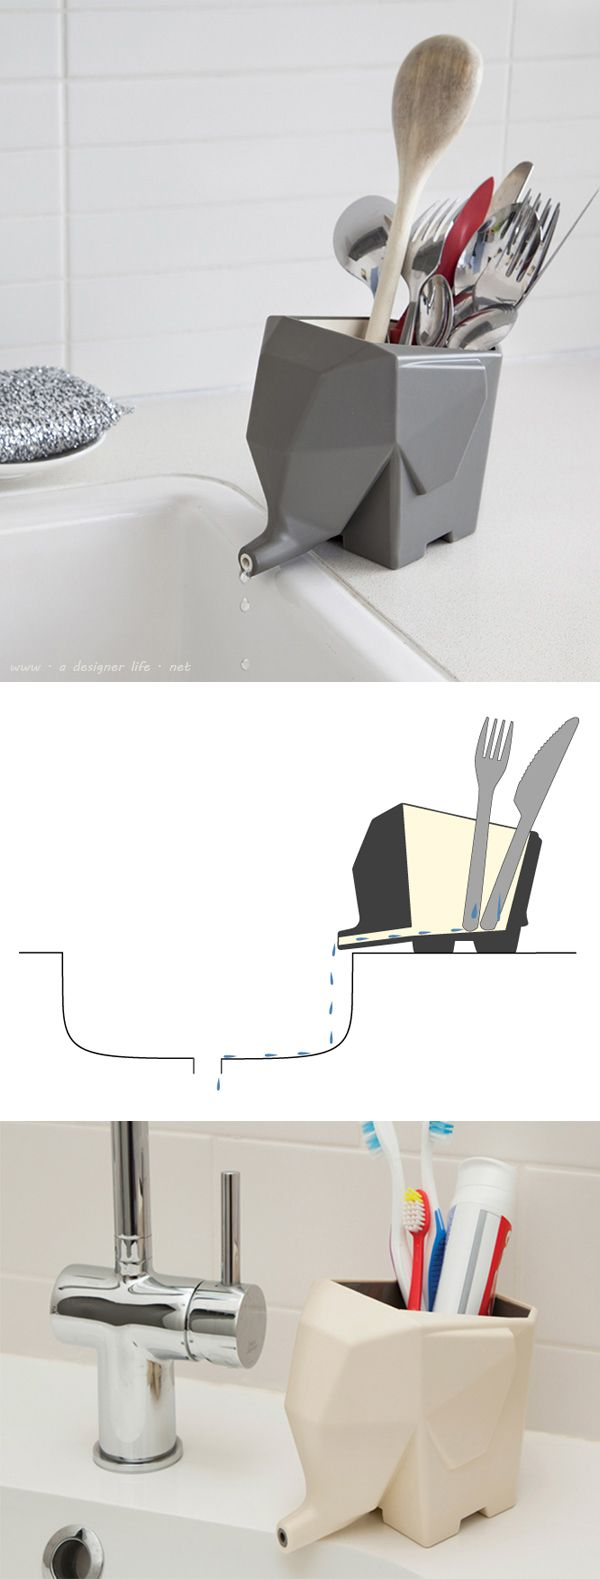 Love it for toothbrushes!!! Elephant Cutlery Drainer by Peleg - his trunk directs the runoff water back into the sink! #industrial_design #product_design